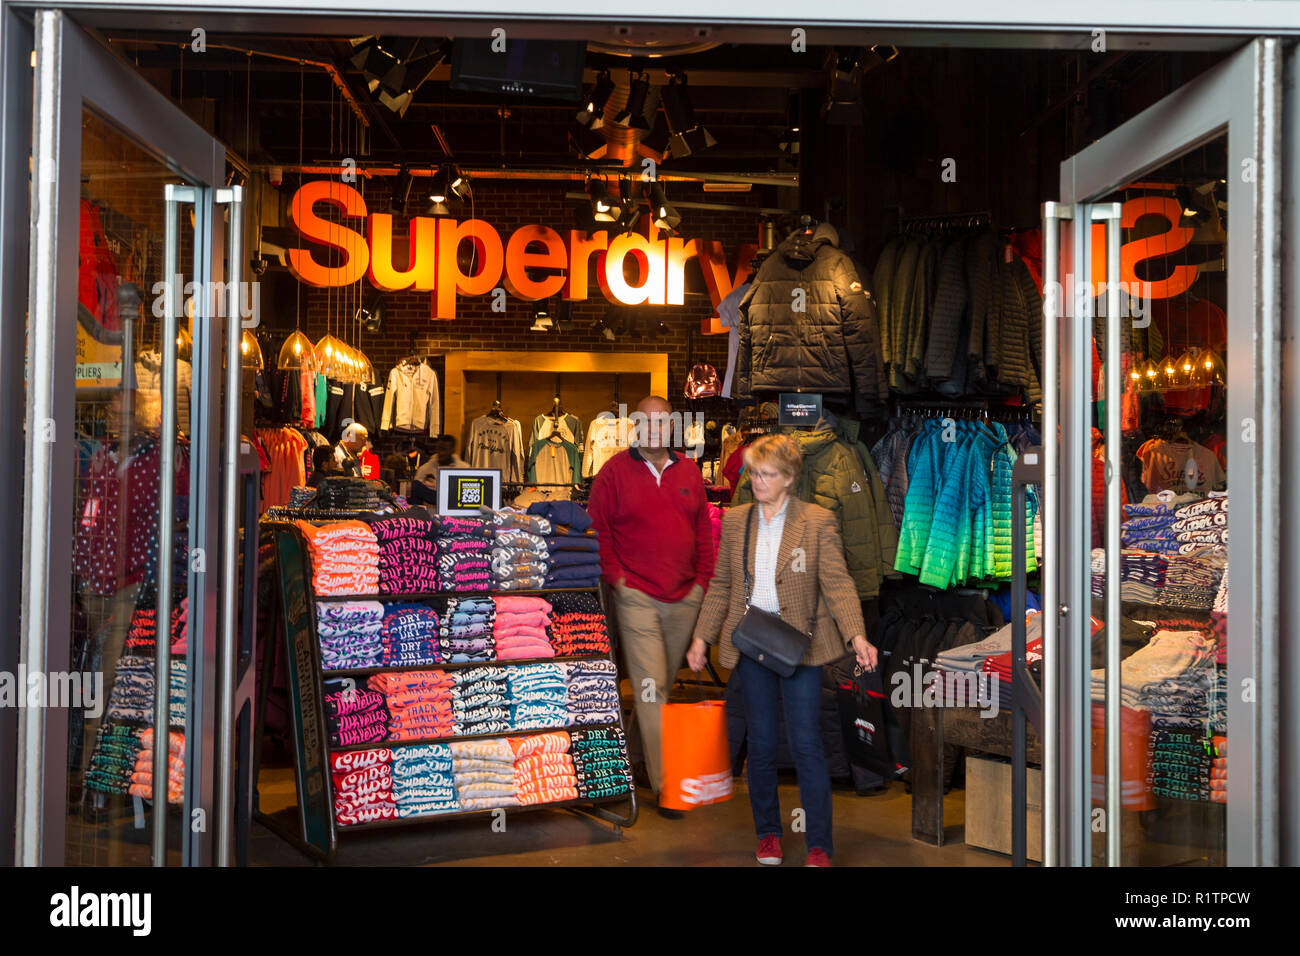 59d425826 Superdry Clothing Store Stock Photos & Superdry Clothing Store Stock ...